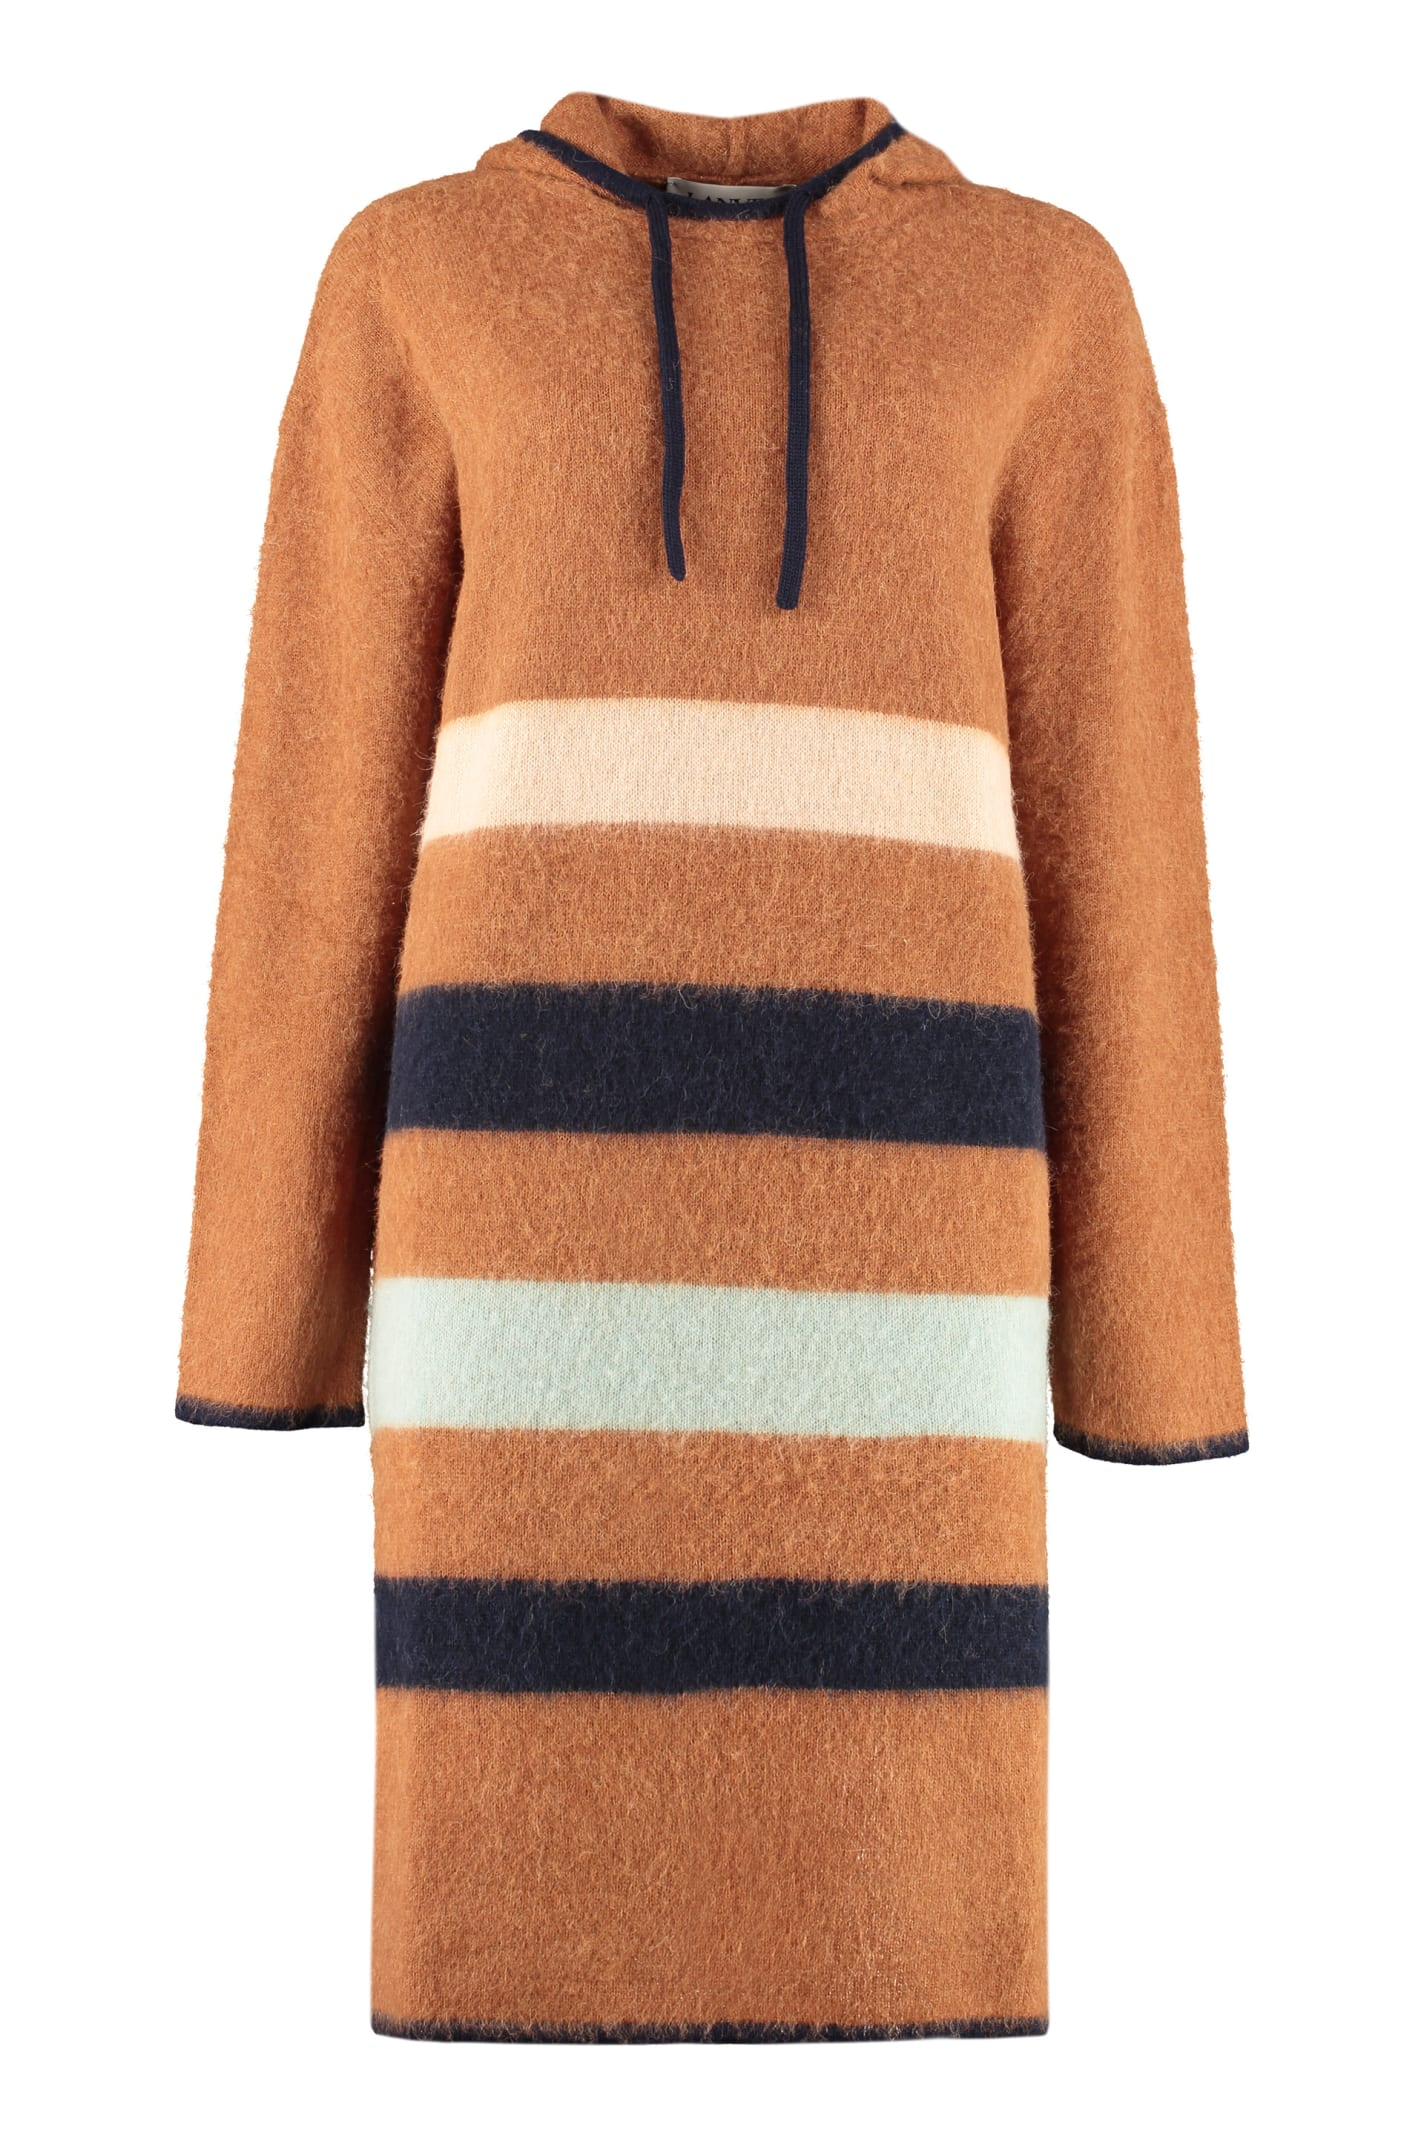 Buy Lanvin Hooded Sweater Dress online, shop Lanvin with free shipping